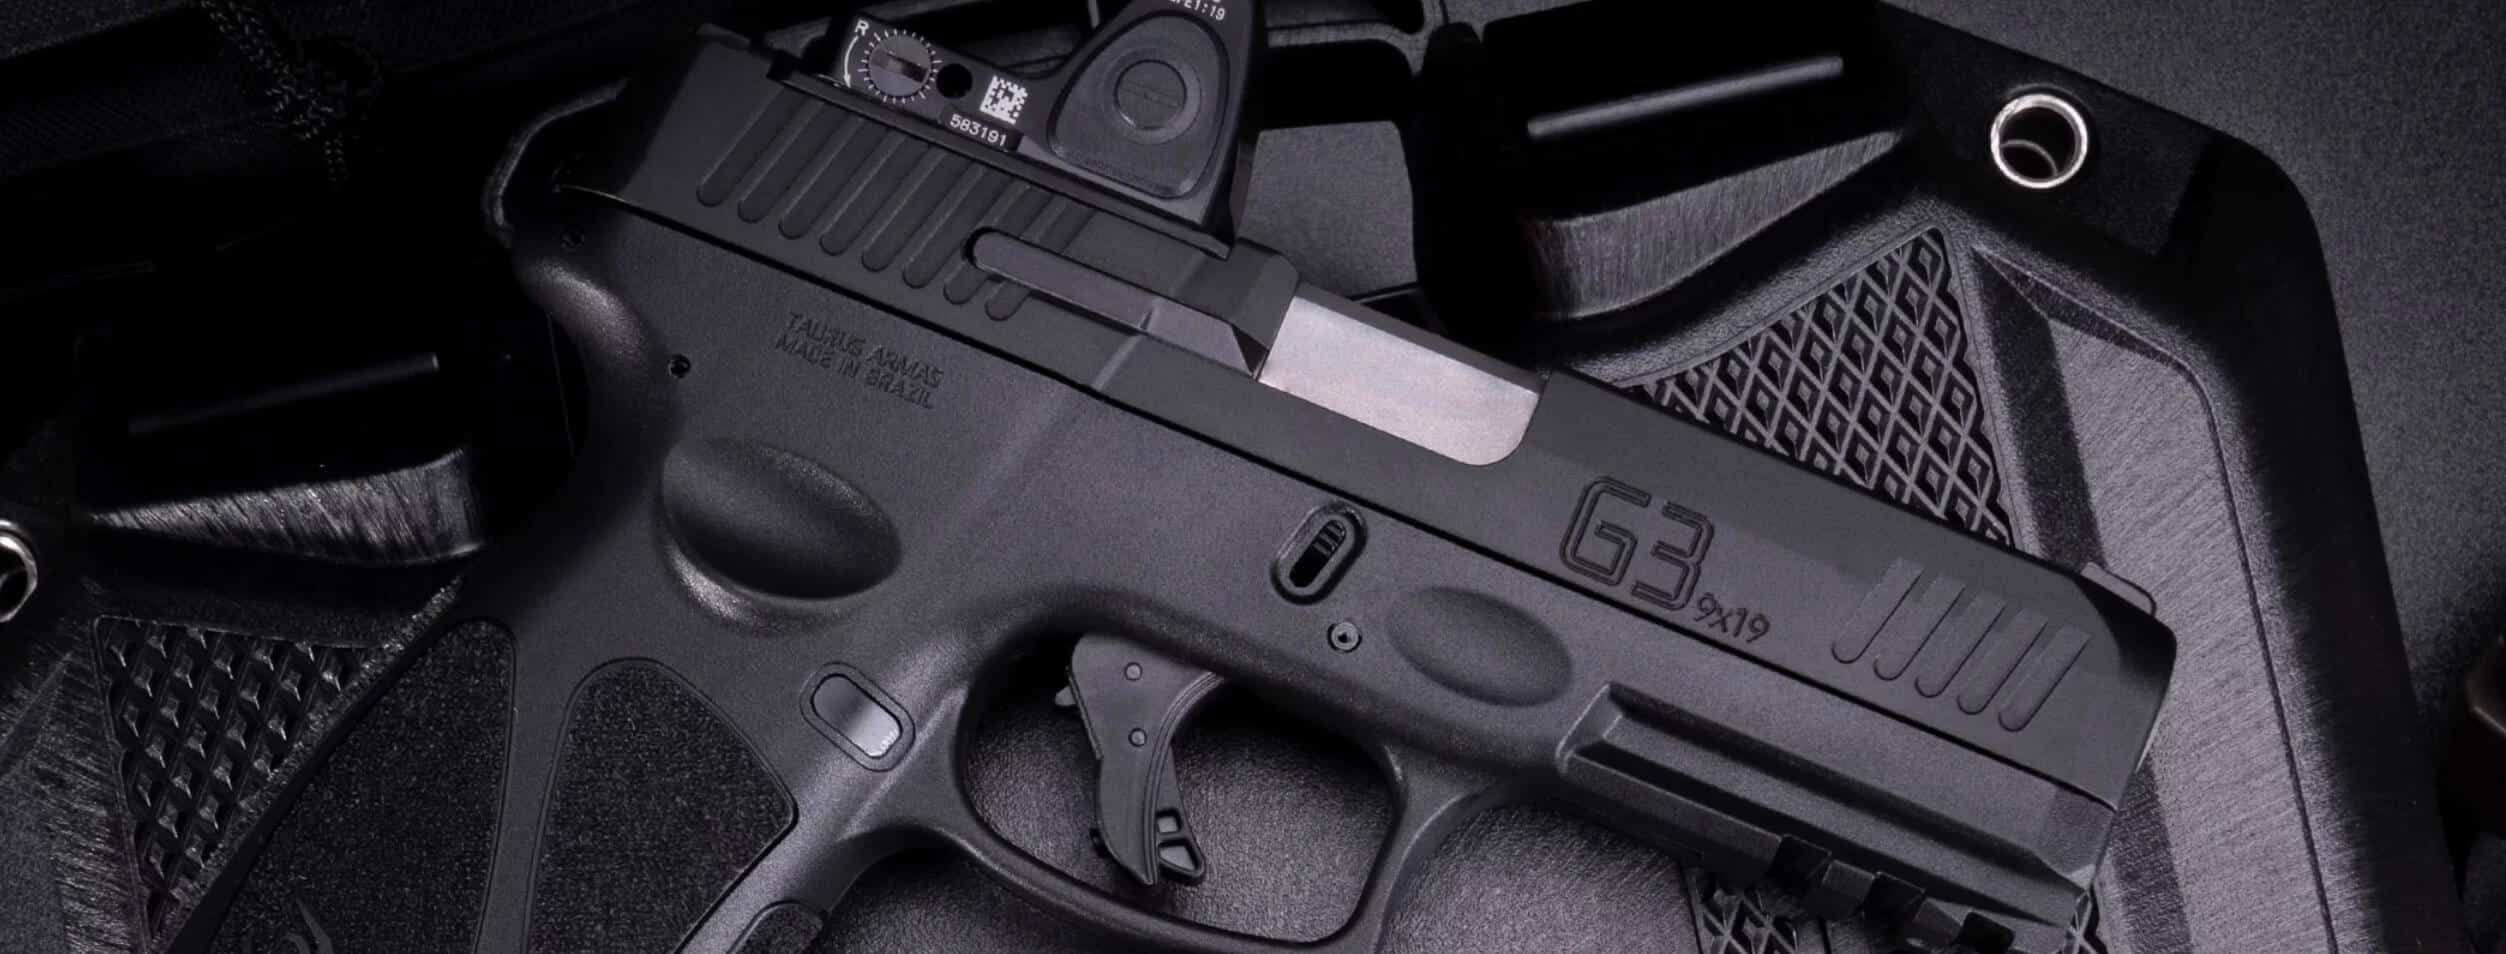 Why You Need To Check Out The Taurus G3 9mm